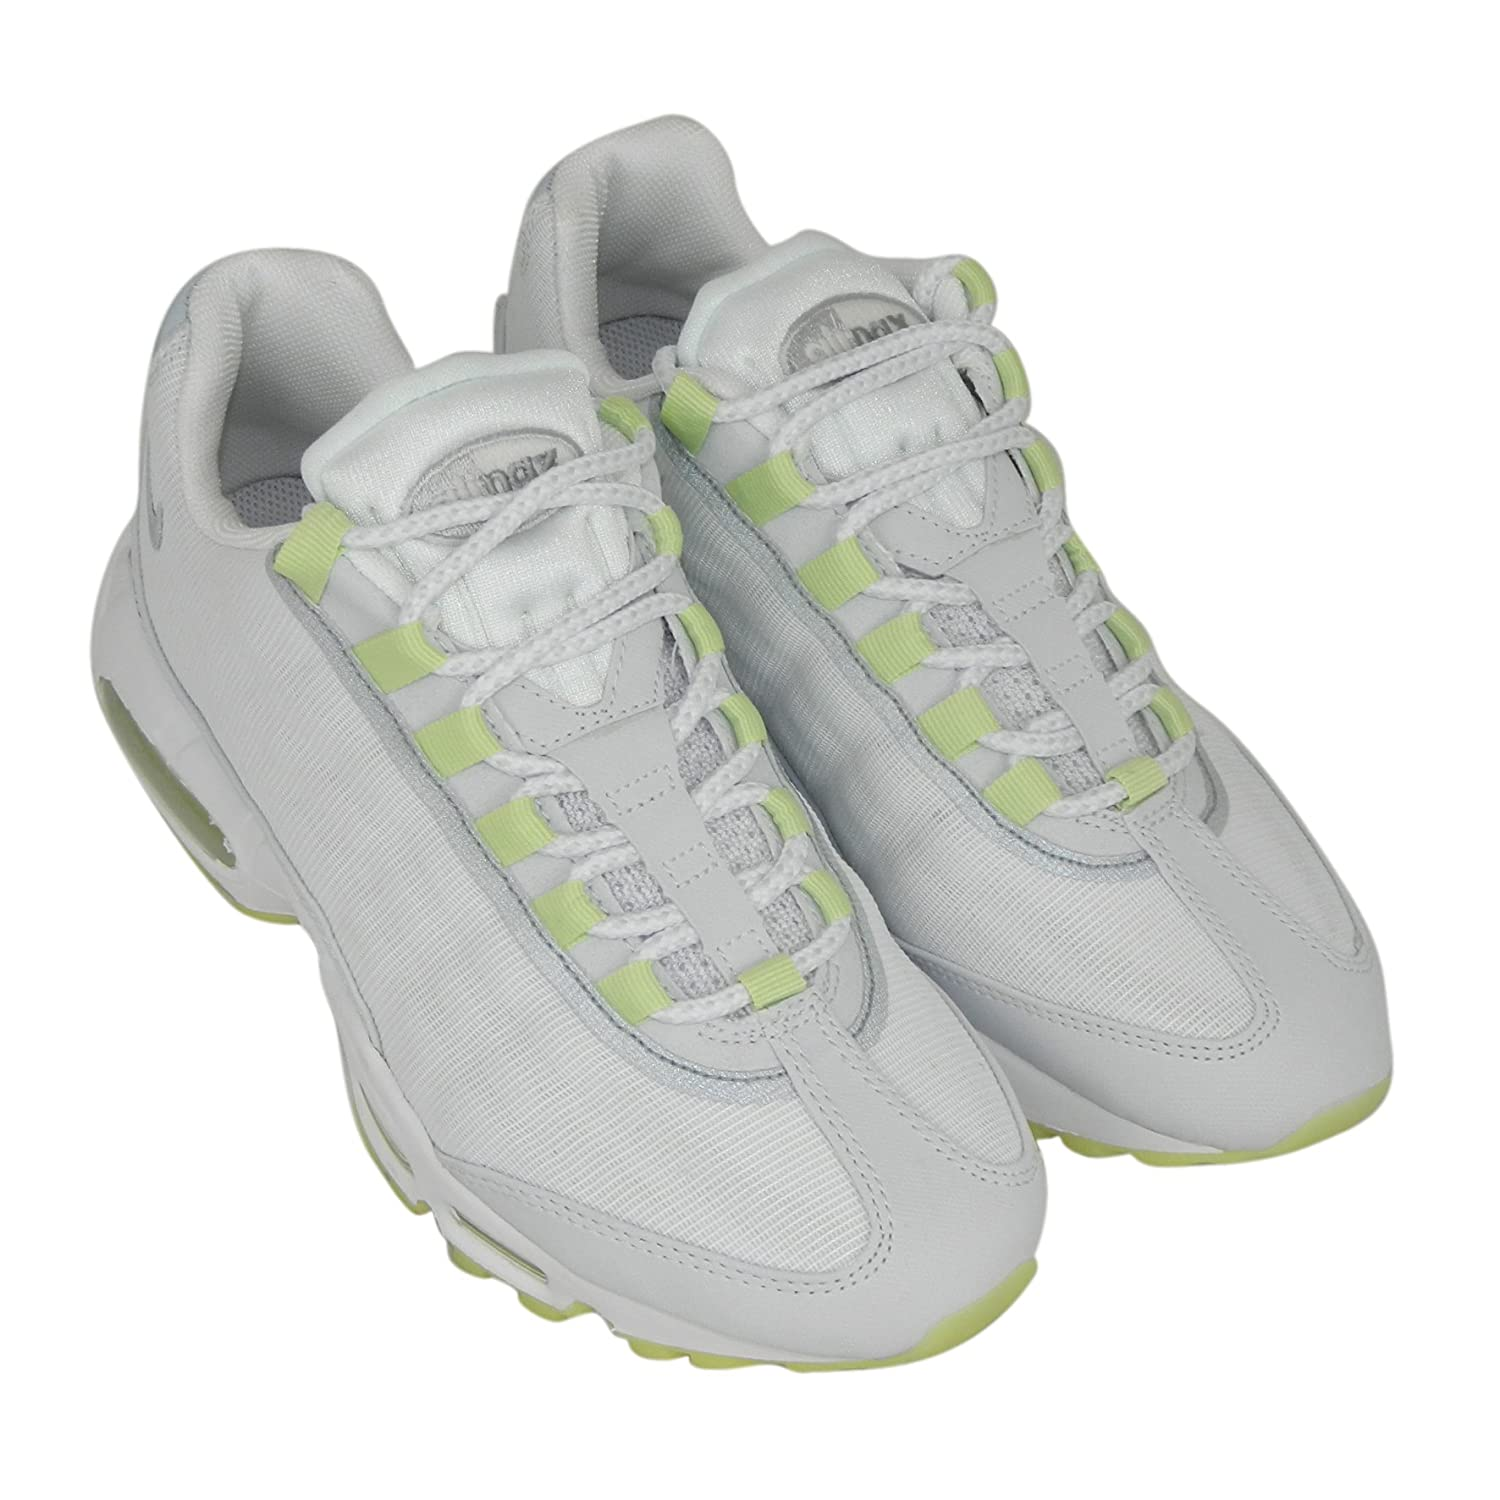 huge selection of db2fd e3db4 Nike Mens Air Max 95 Premium Tape White Glow In The Dark Trainer Size 11  UK  Amazon.co.uk  Shoes   Bags